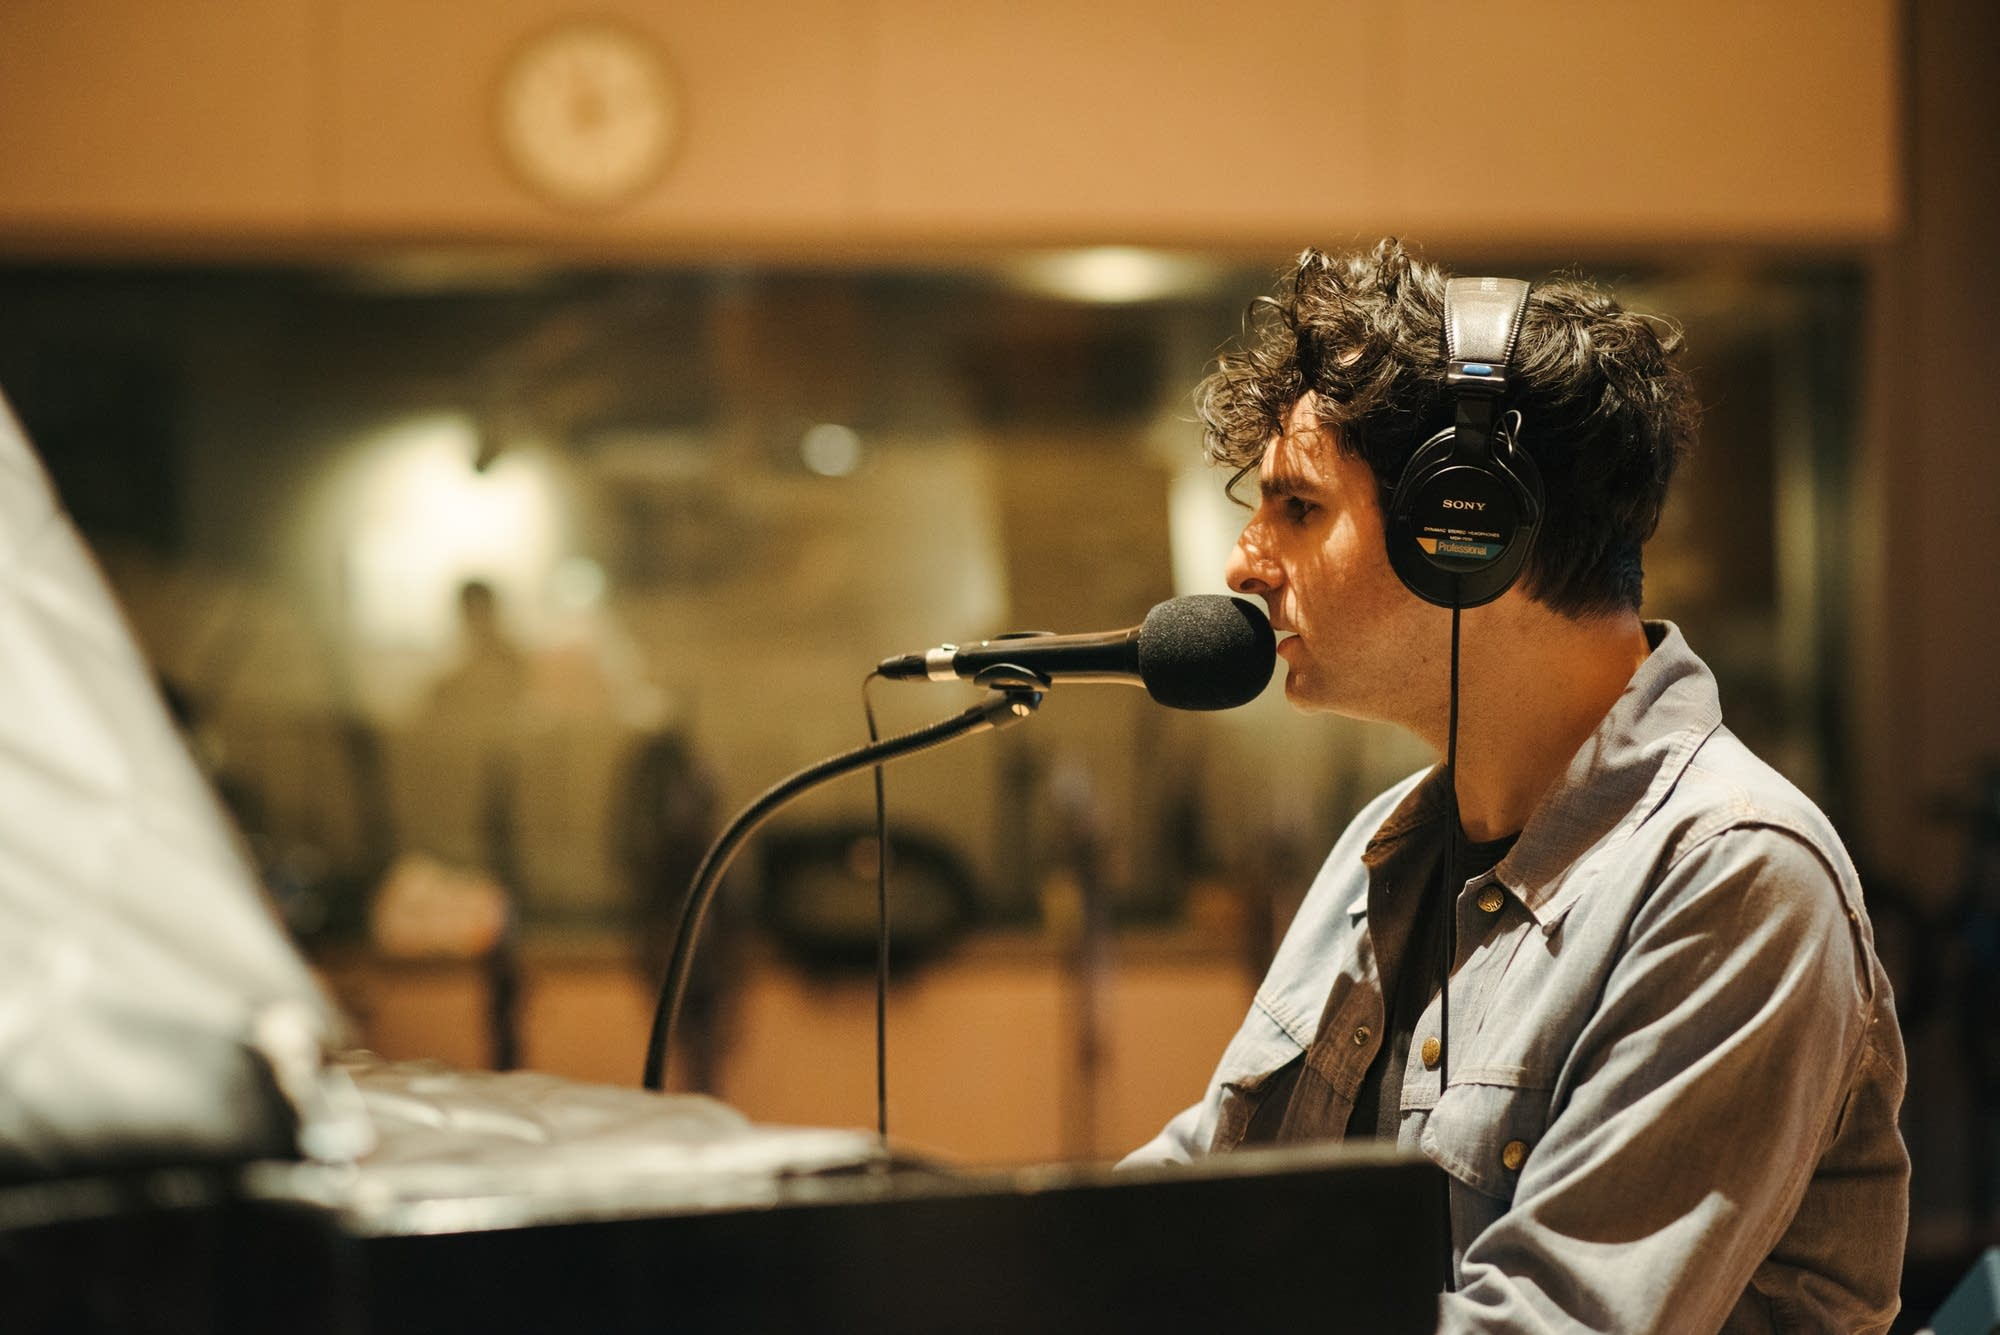 Low Cut Connie perform in The Current studio.